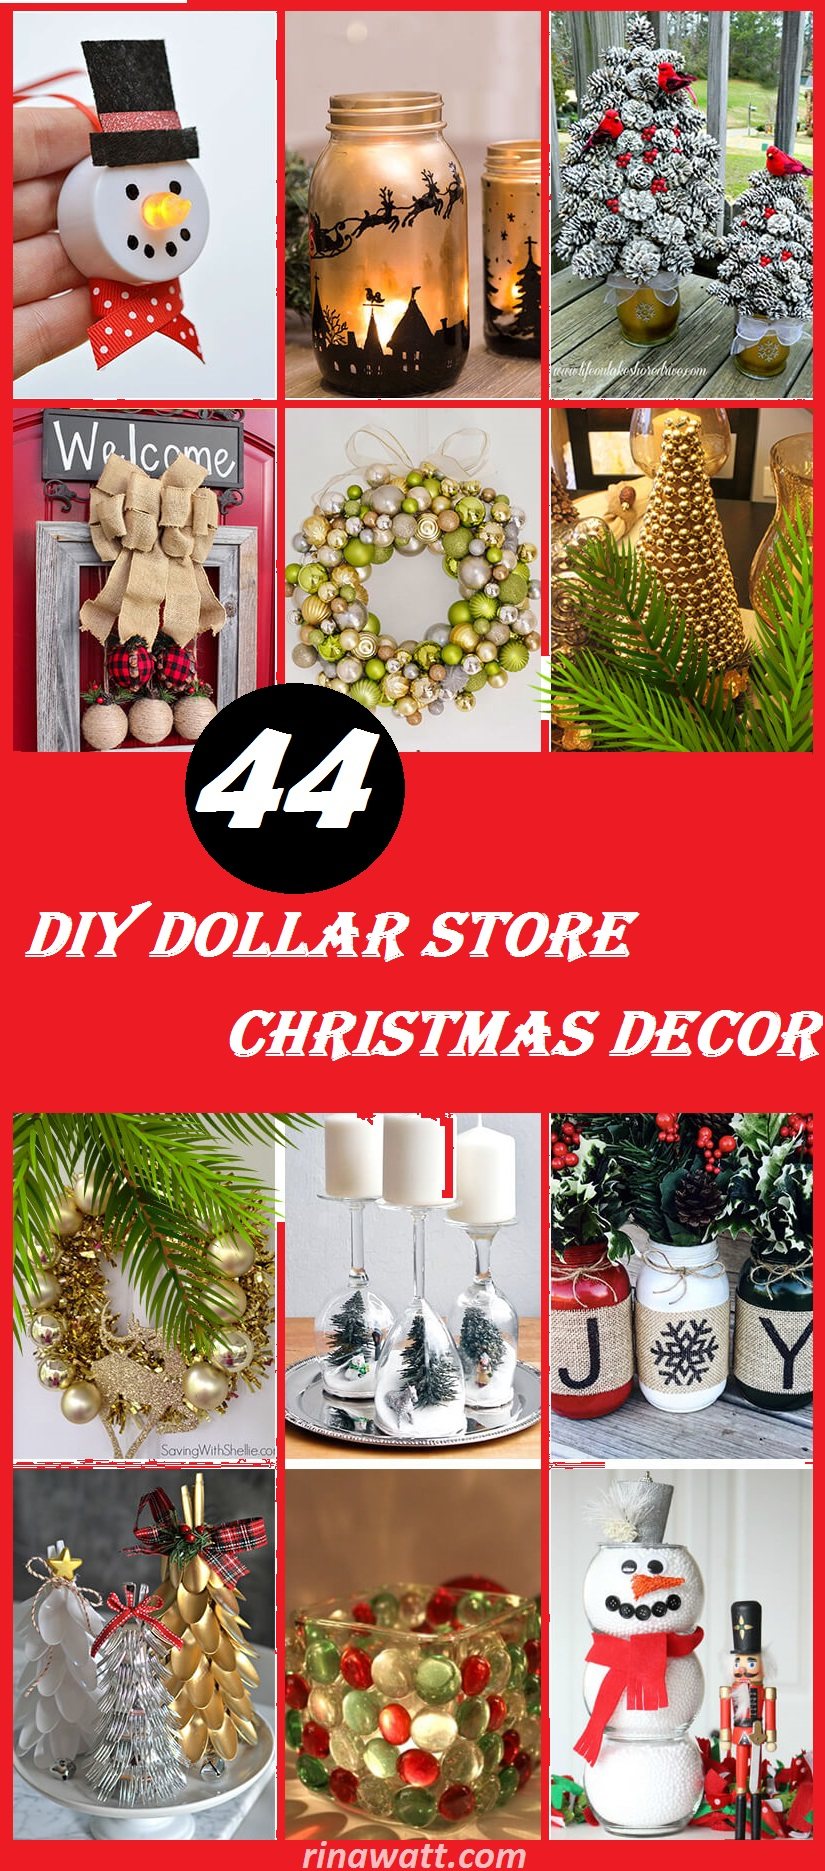 44 Easy Diy Dollar Store Christmas Decorations For Decorating On A Budget Rina Watt Blogger Home Decor Diy And Recipes